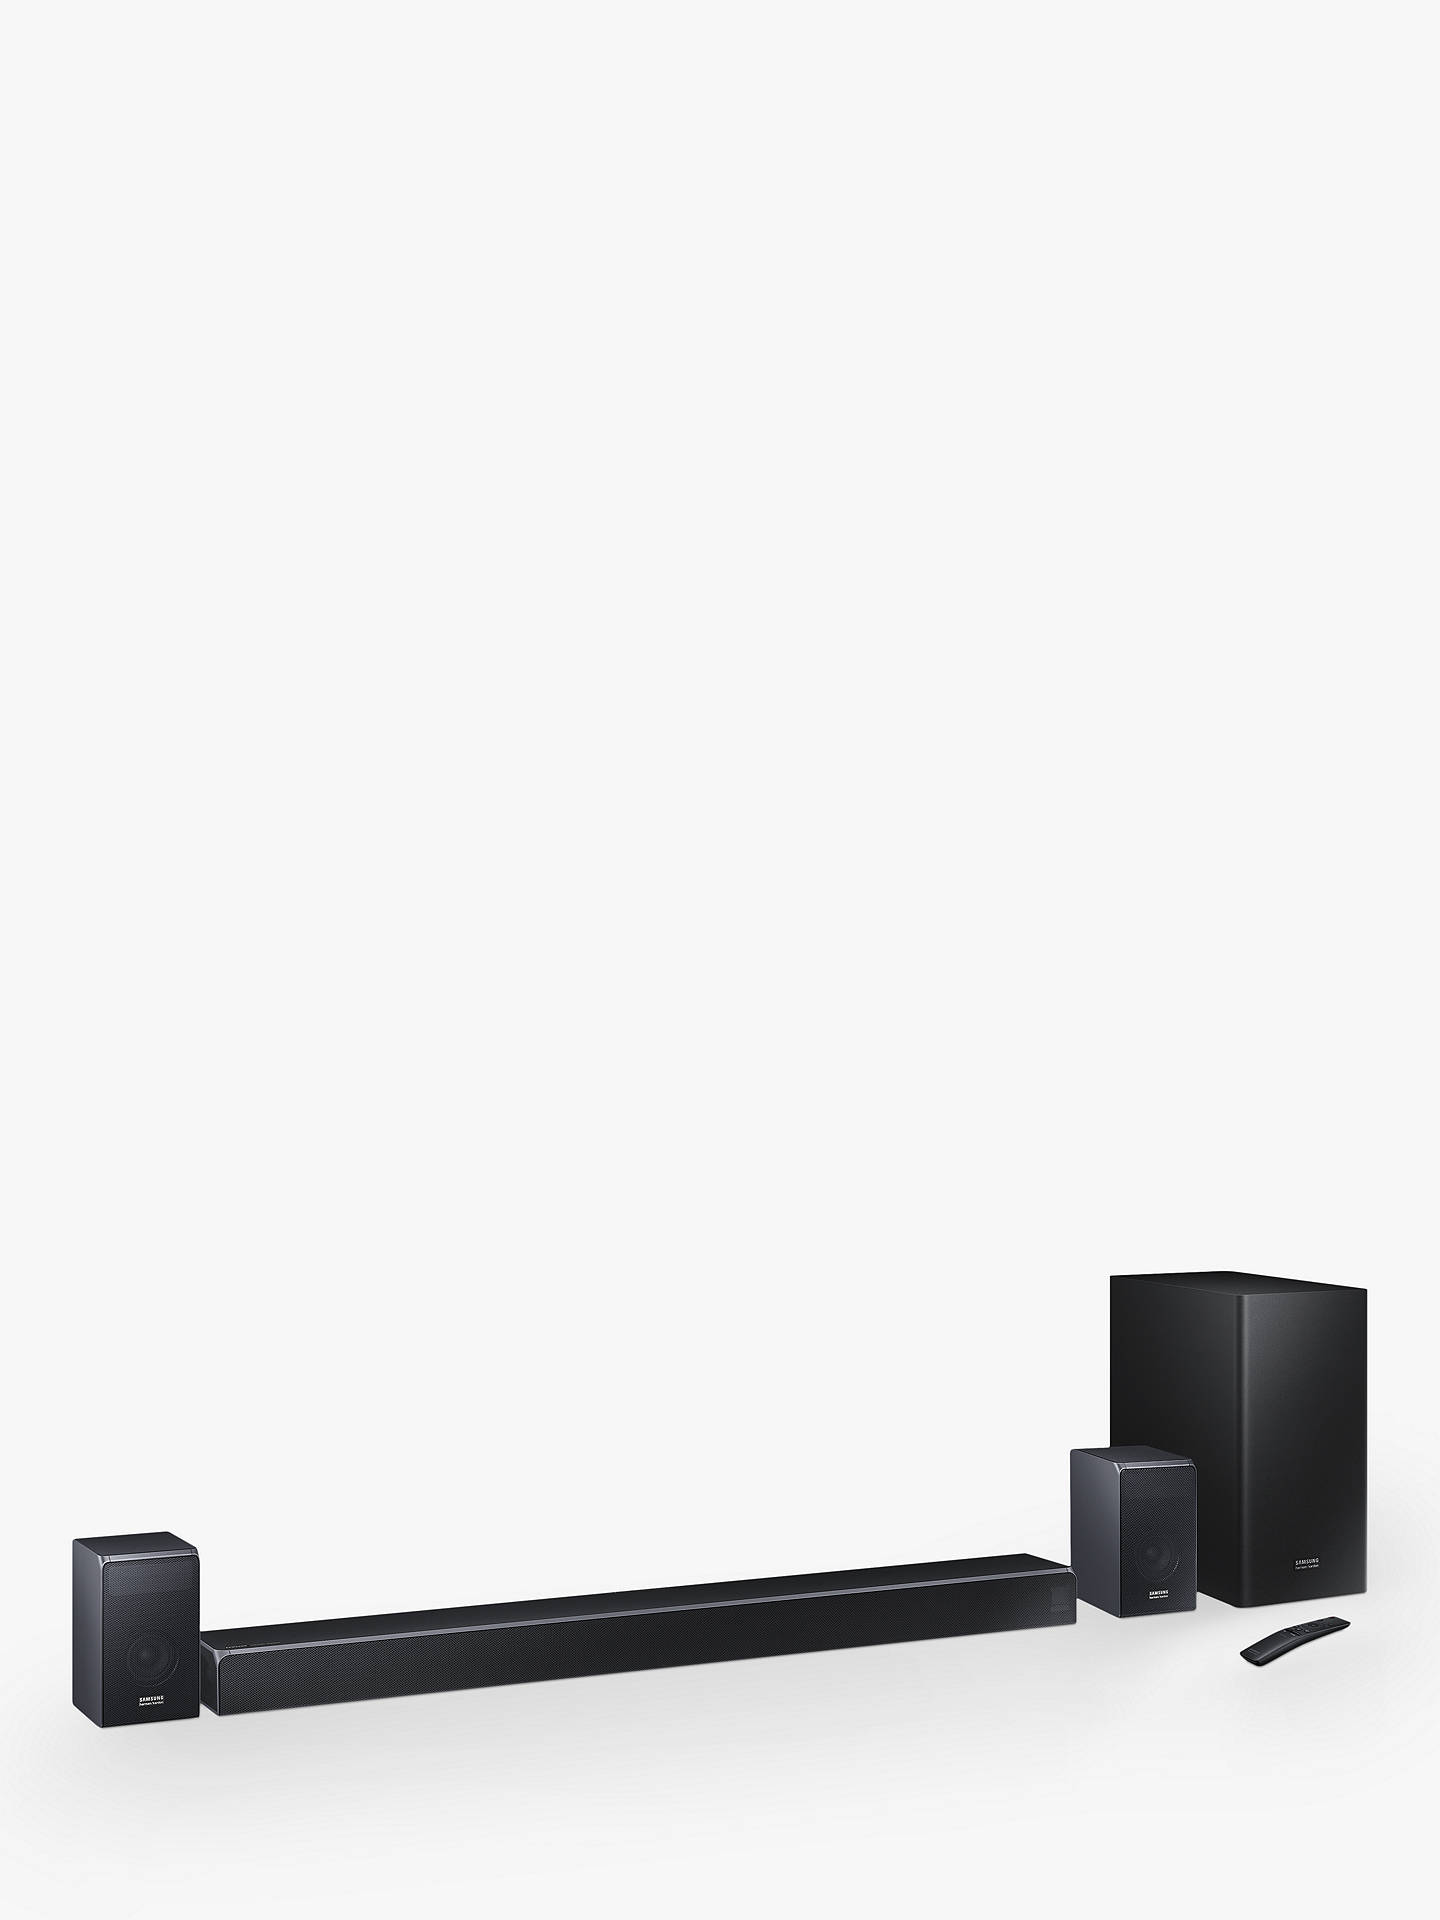 Samsung harman/kardon HW-Q90R Bluetooth Wi-Fi Cinematic Sound Bar with  Dolby Atmos, Wireless Subwoofer & Rear Surround Speakers